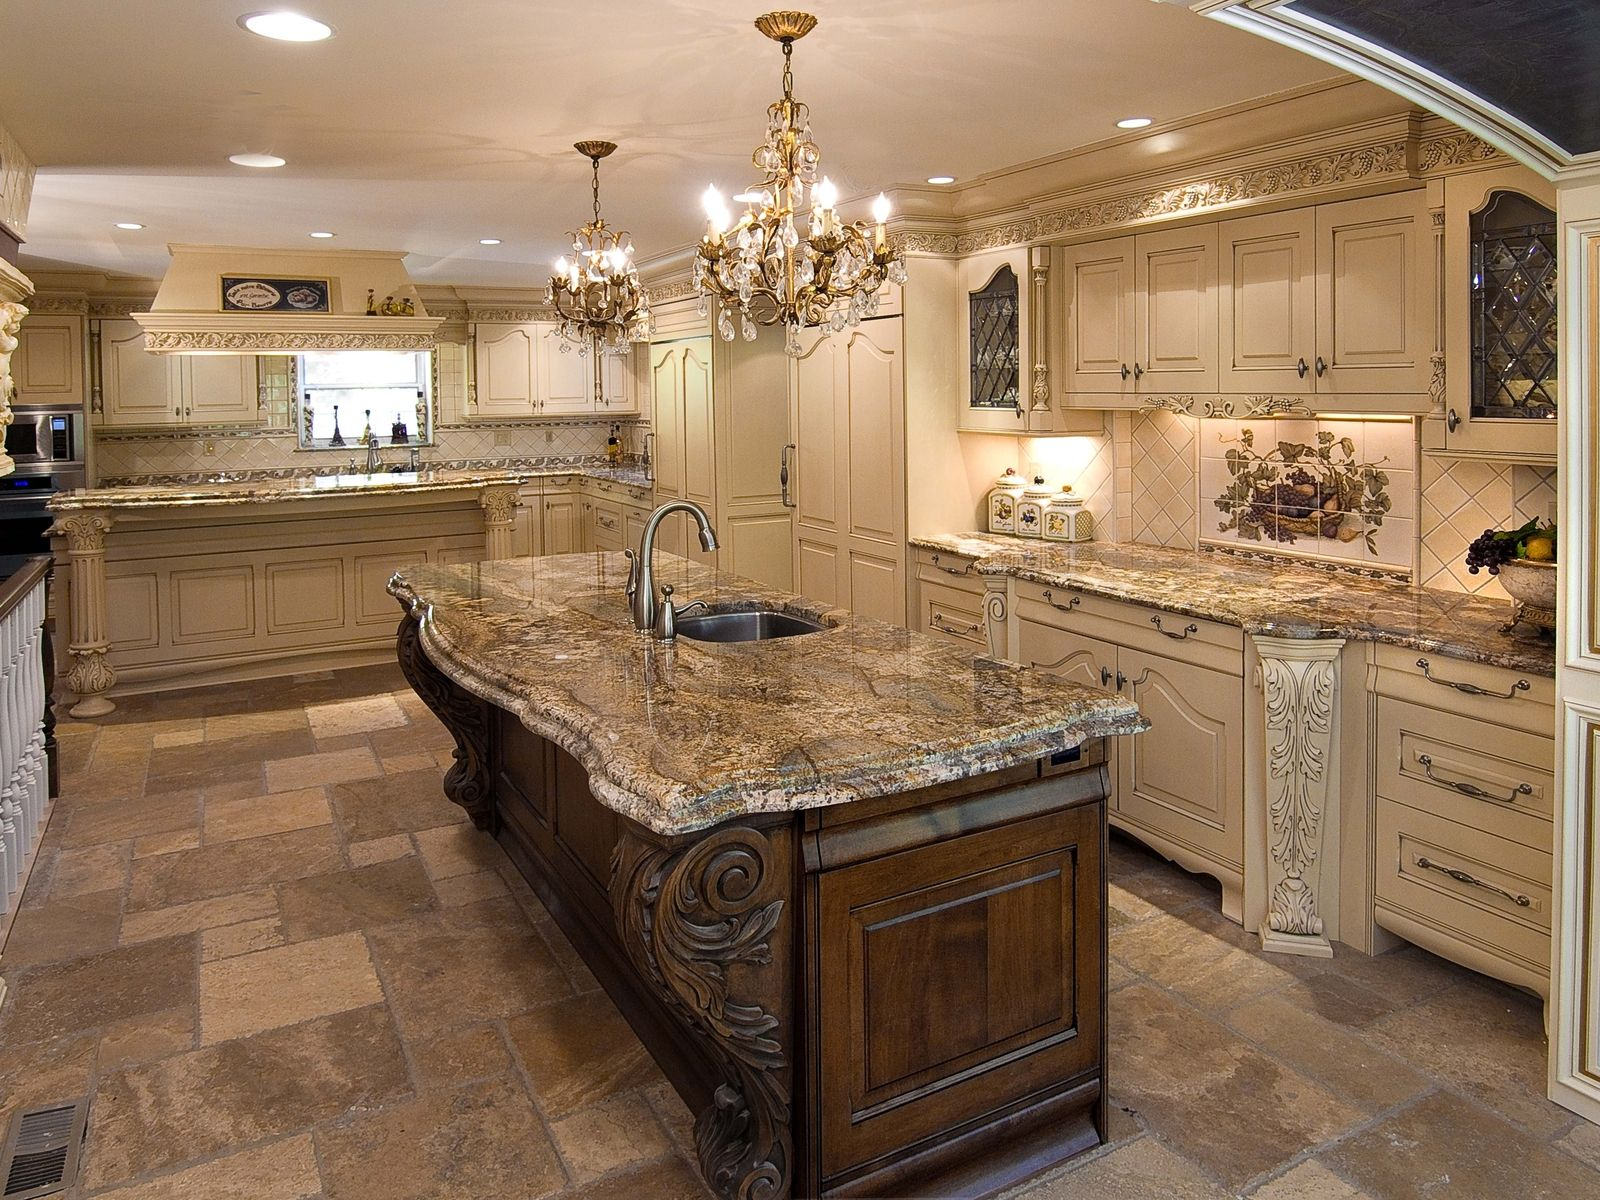 Ornate kitchen cabinets custom made ornate kitchen by for Custom cabinetry